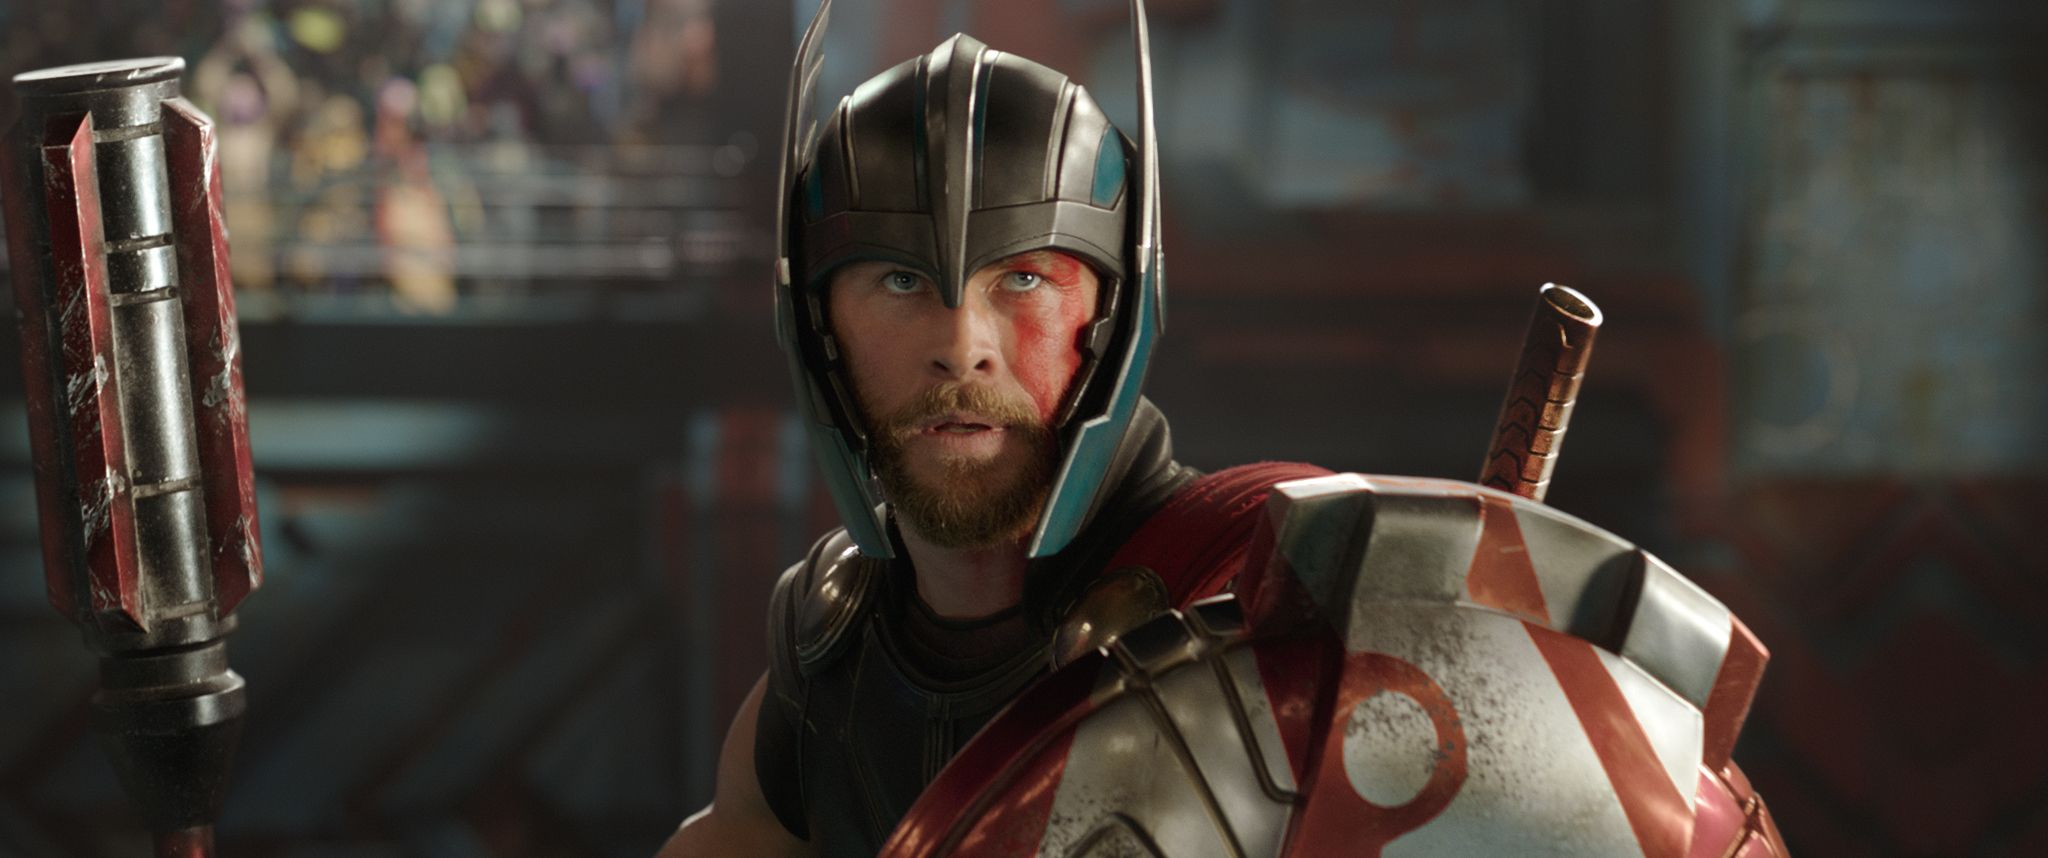 thor-ragnarok-chris-hemsworth-image-2